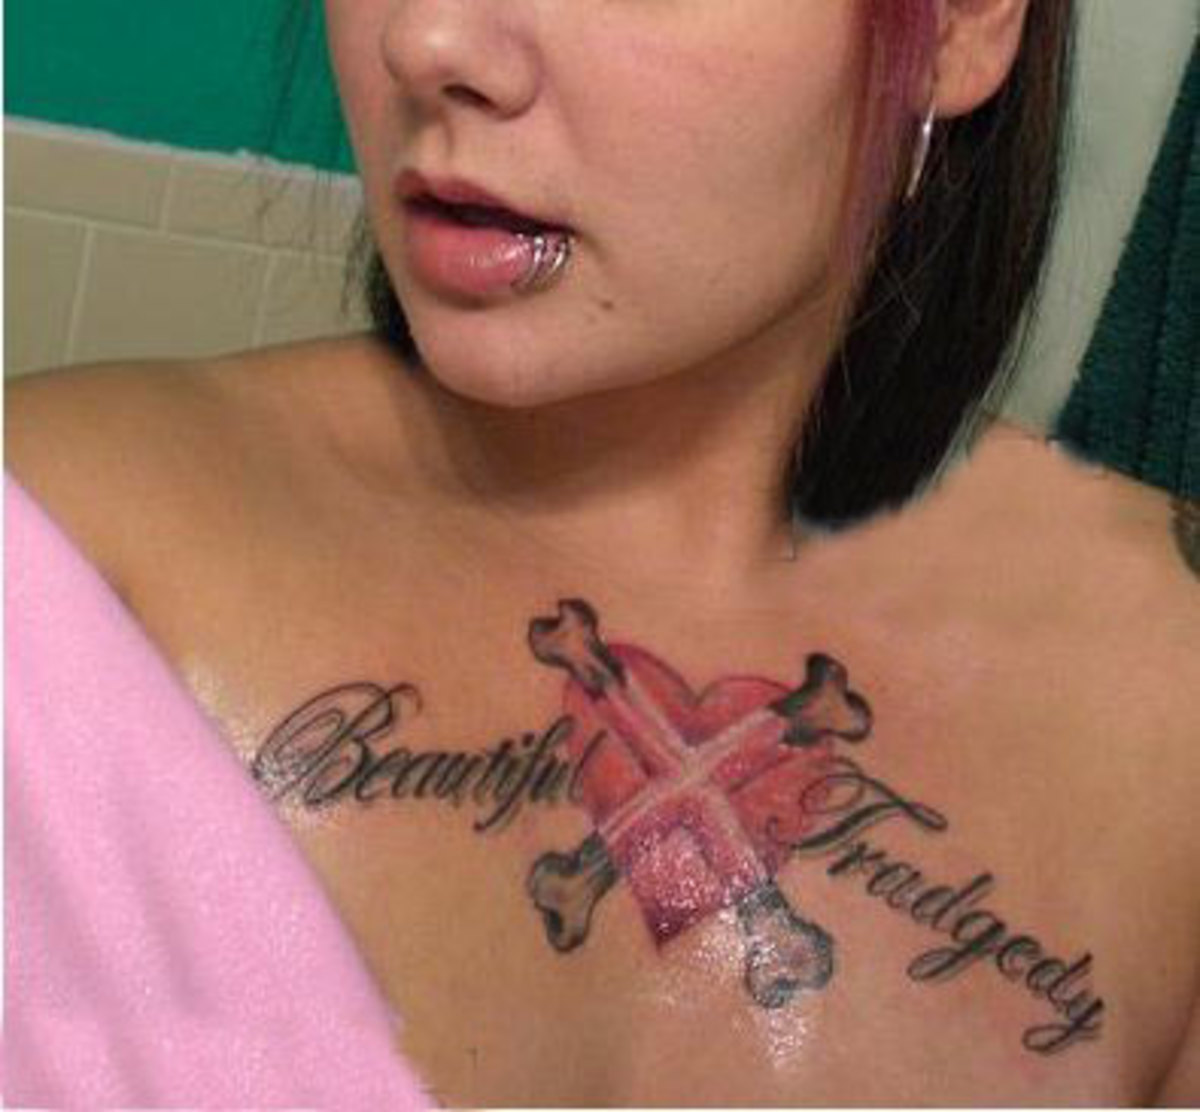 The tragedy is she's probably very beautiful, except for the heart and crossbones on her chest, and the terrible spelling.